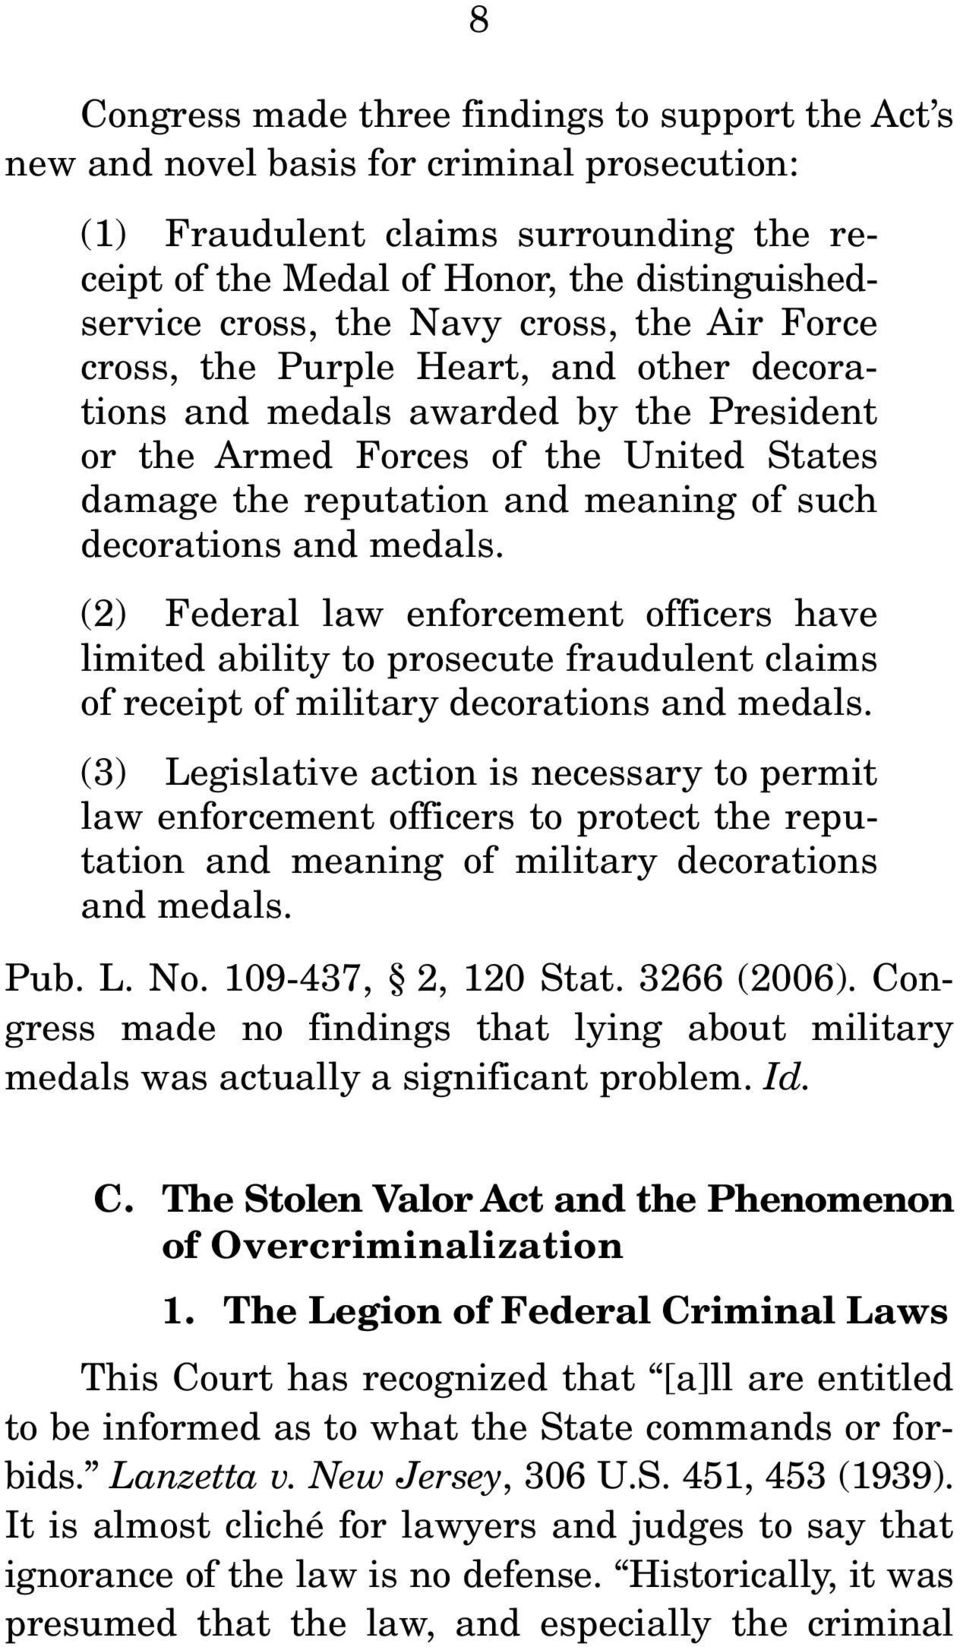 decorations and medals. (2) Federal law enforcement officers have limited ability to prosecute fraudulent claims of receipt of military decorations and medals.